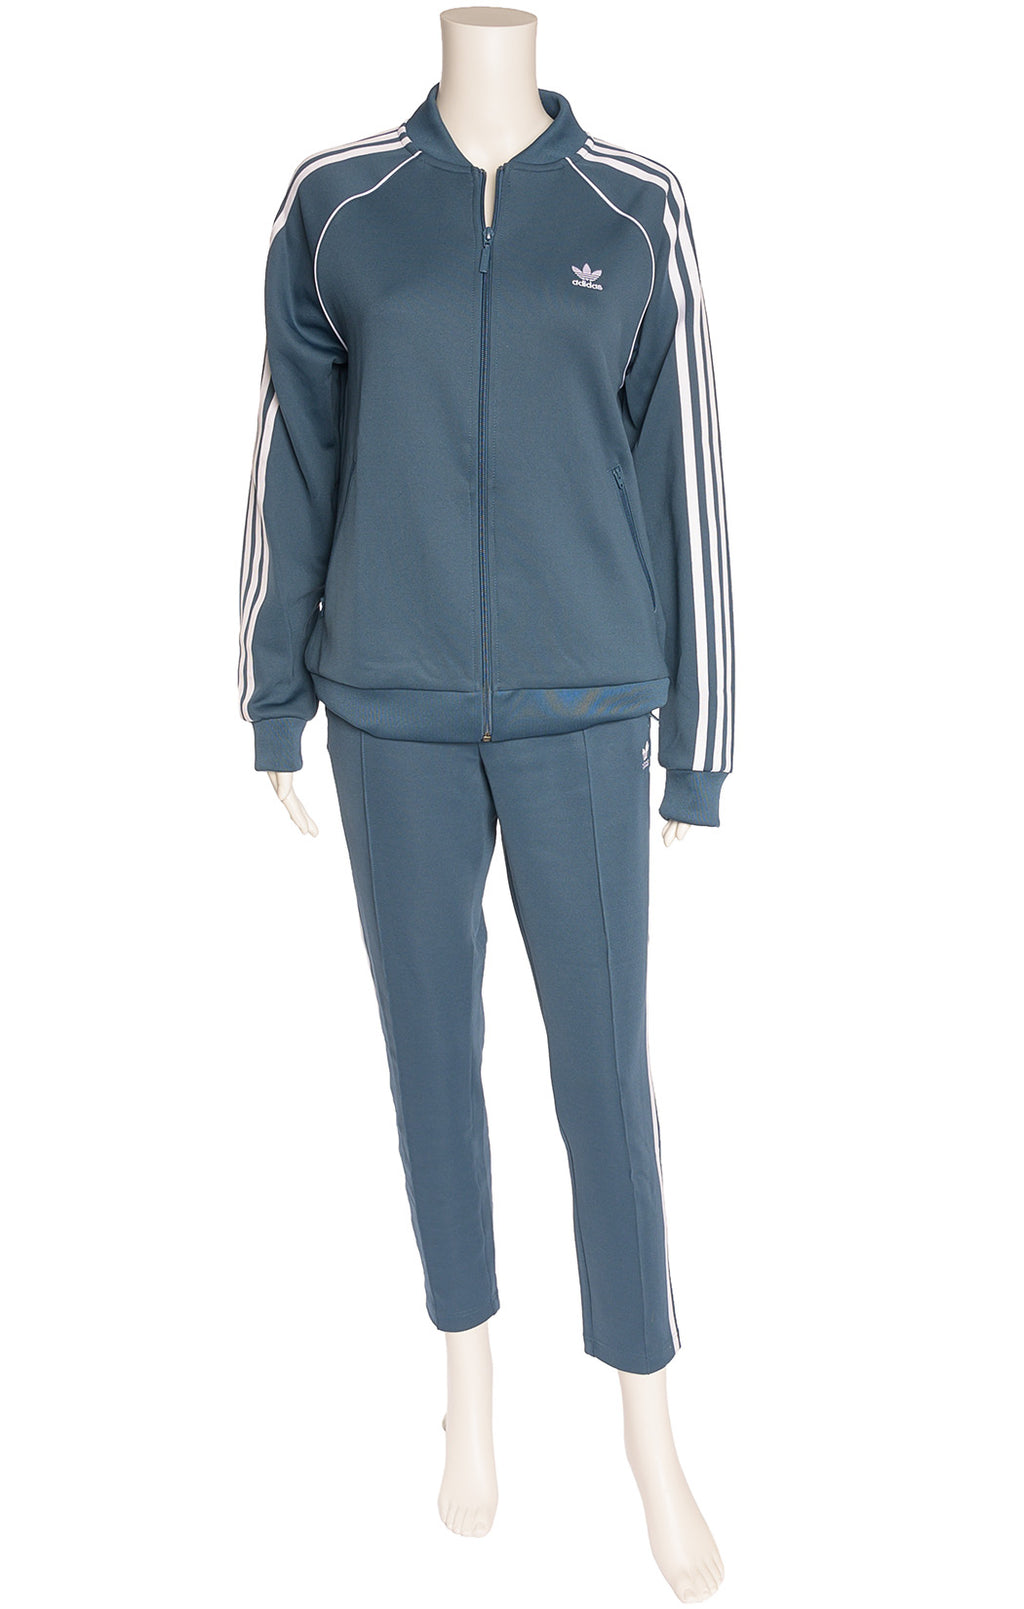 Front view of  ADIDAS  Track suit Size: Medium